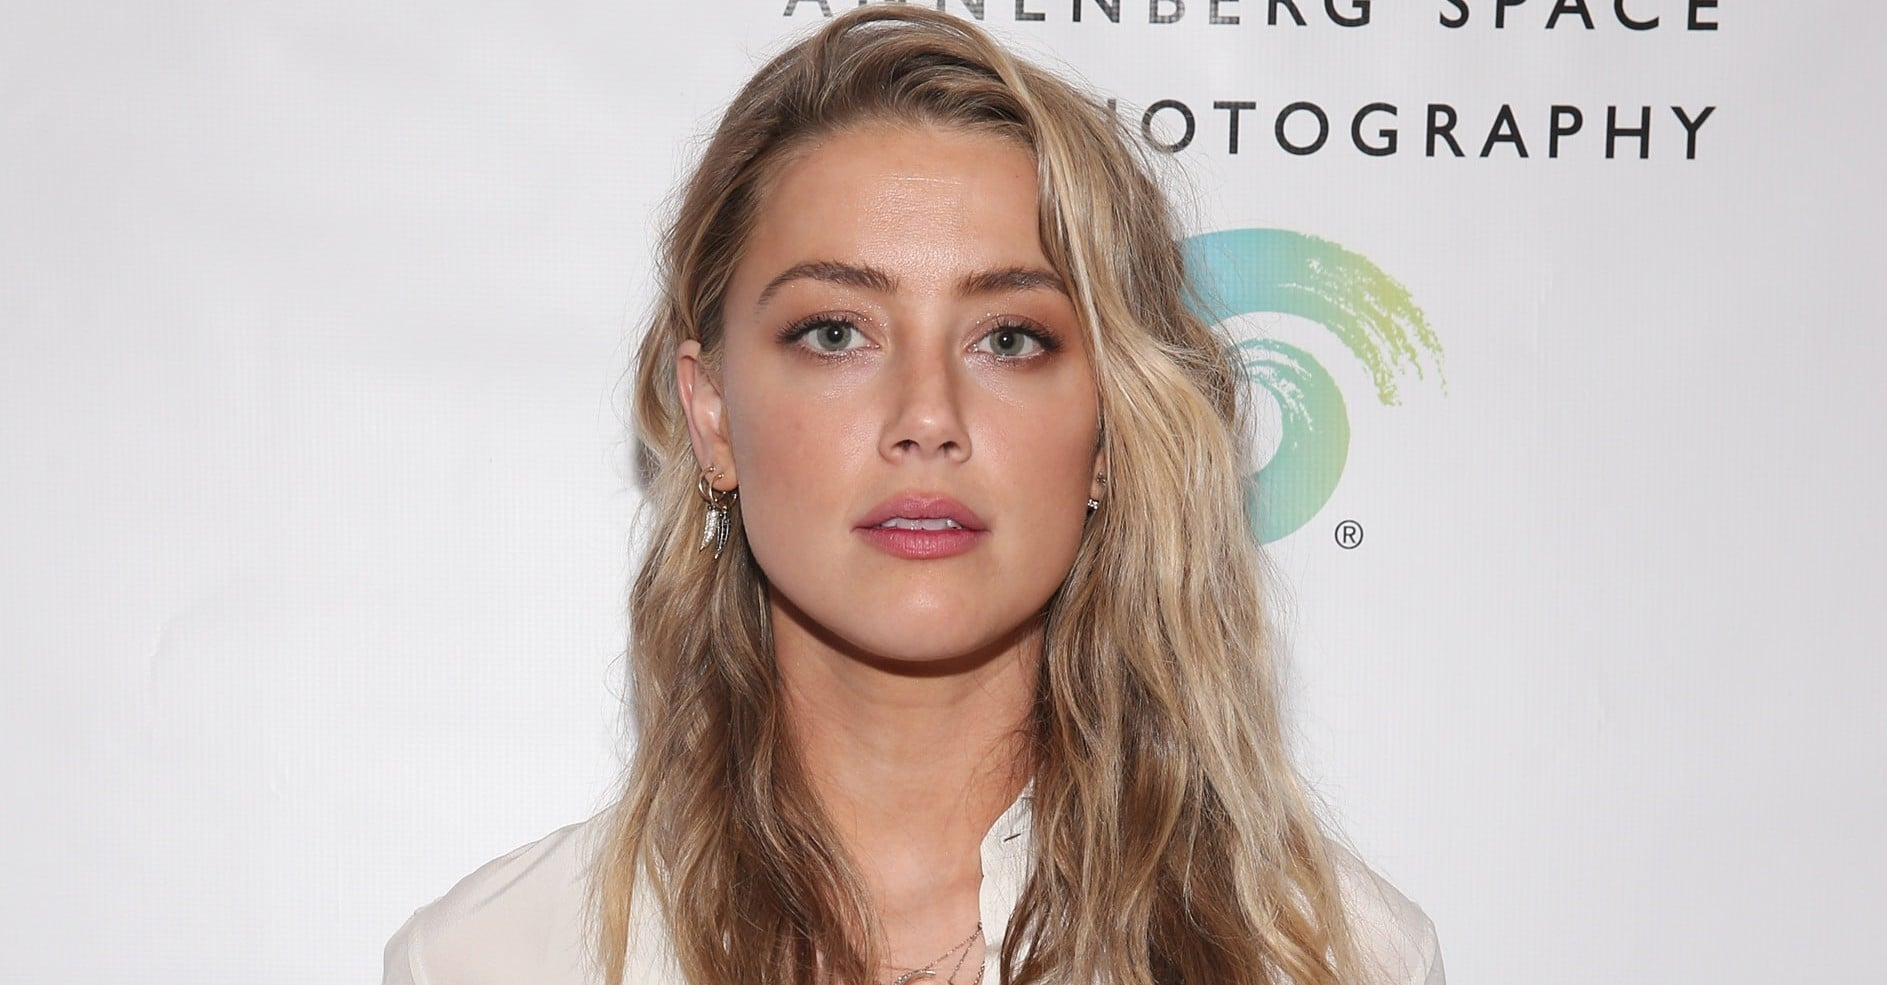 amber heard s essay about domestic abuse in porter magazine share this link